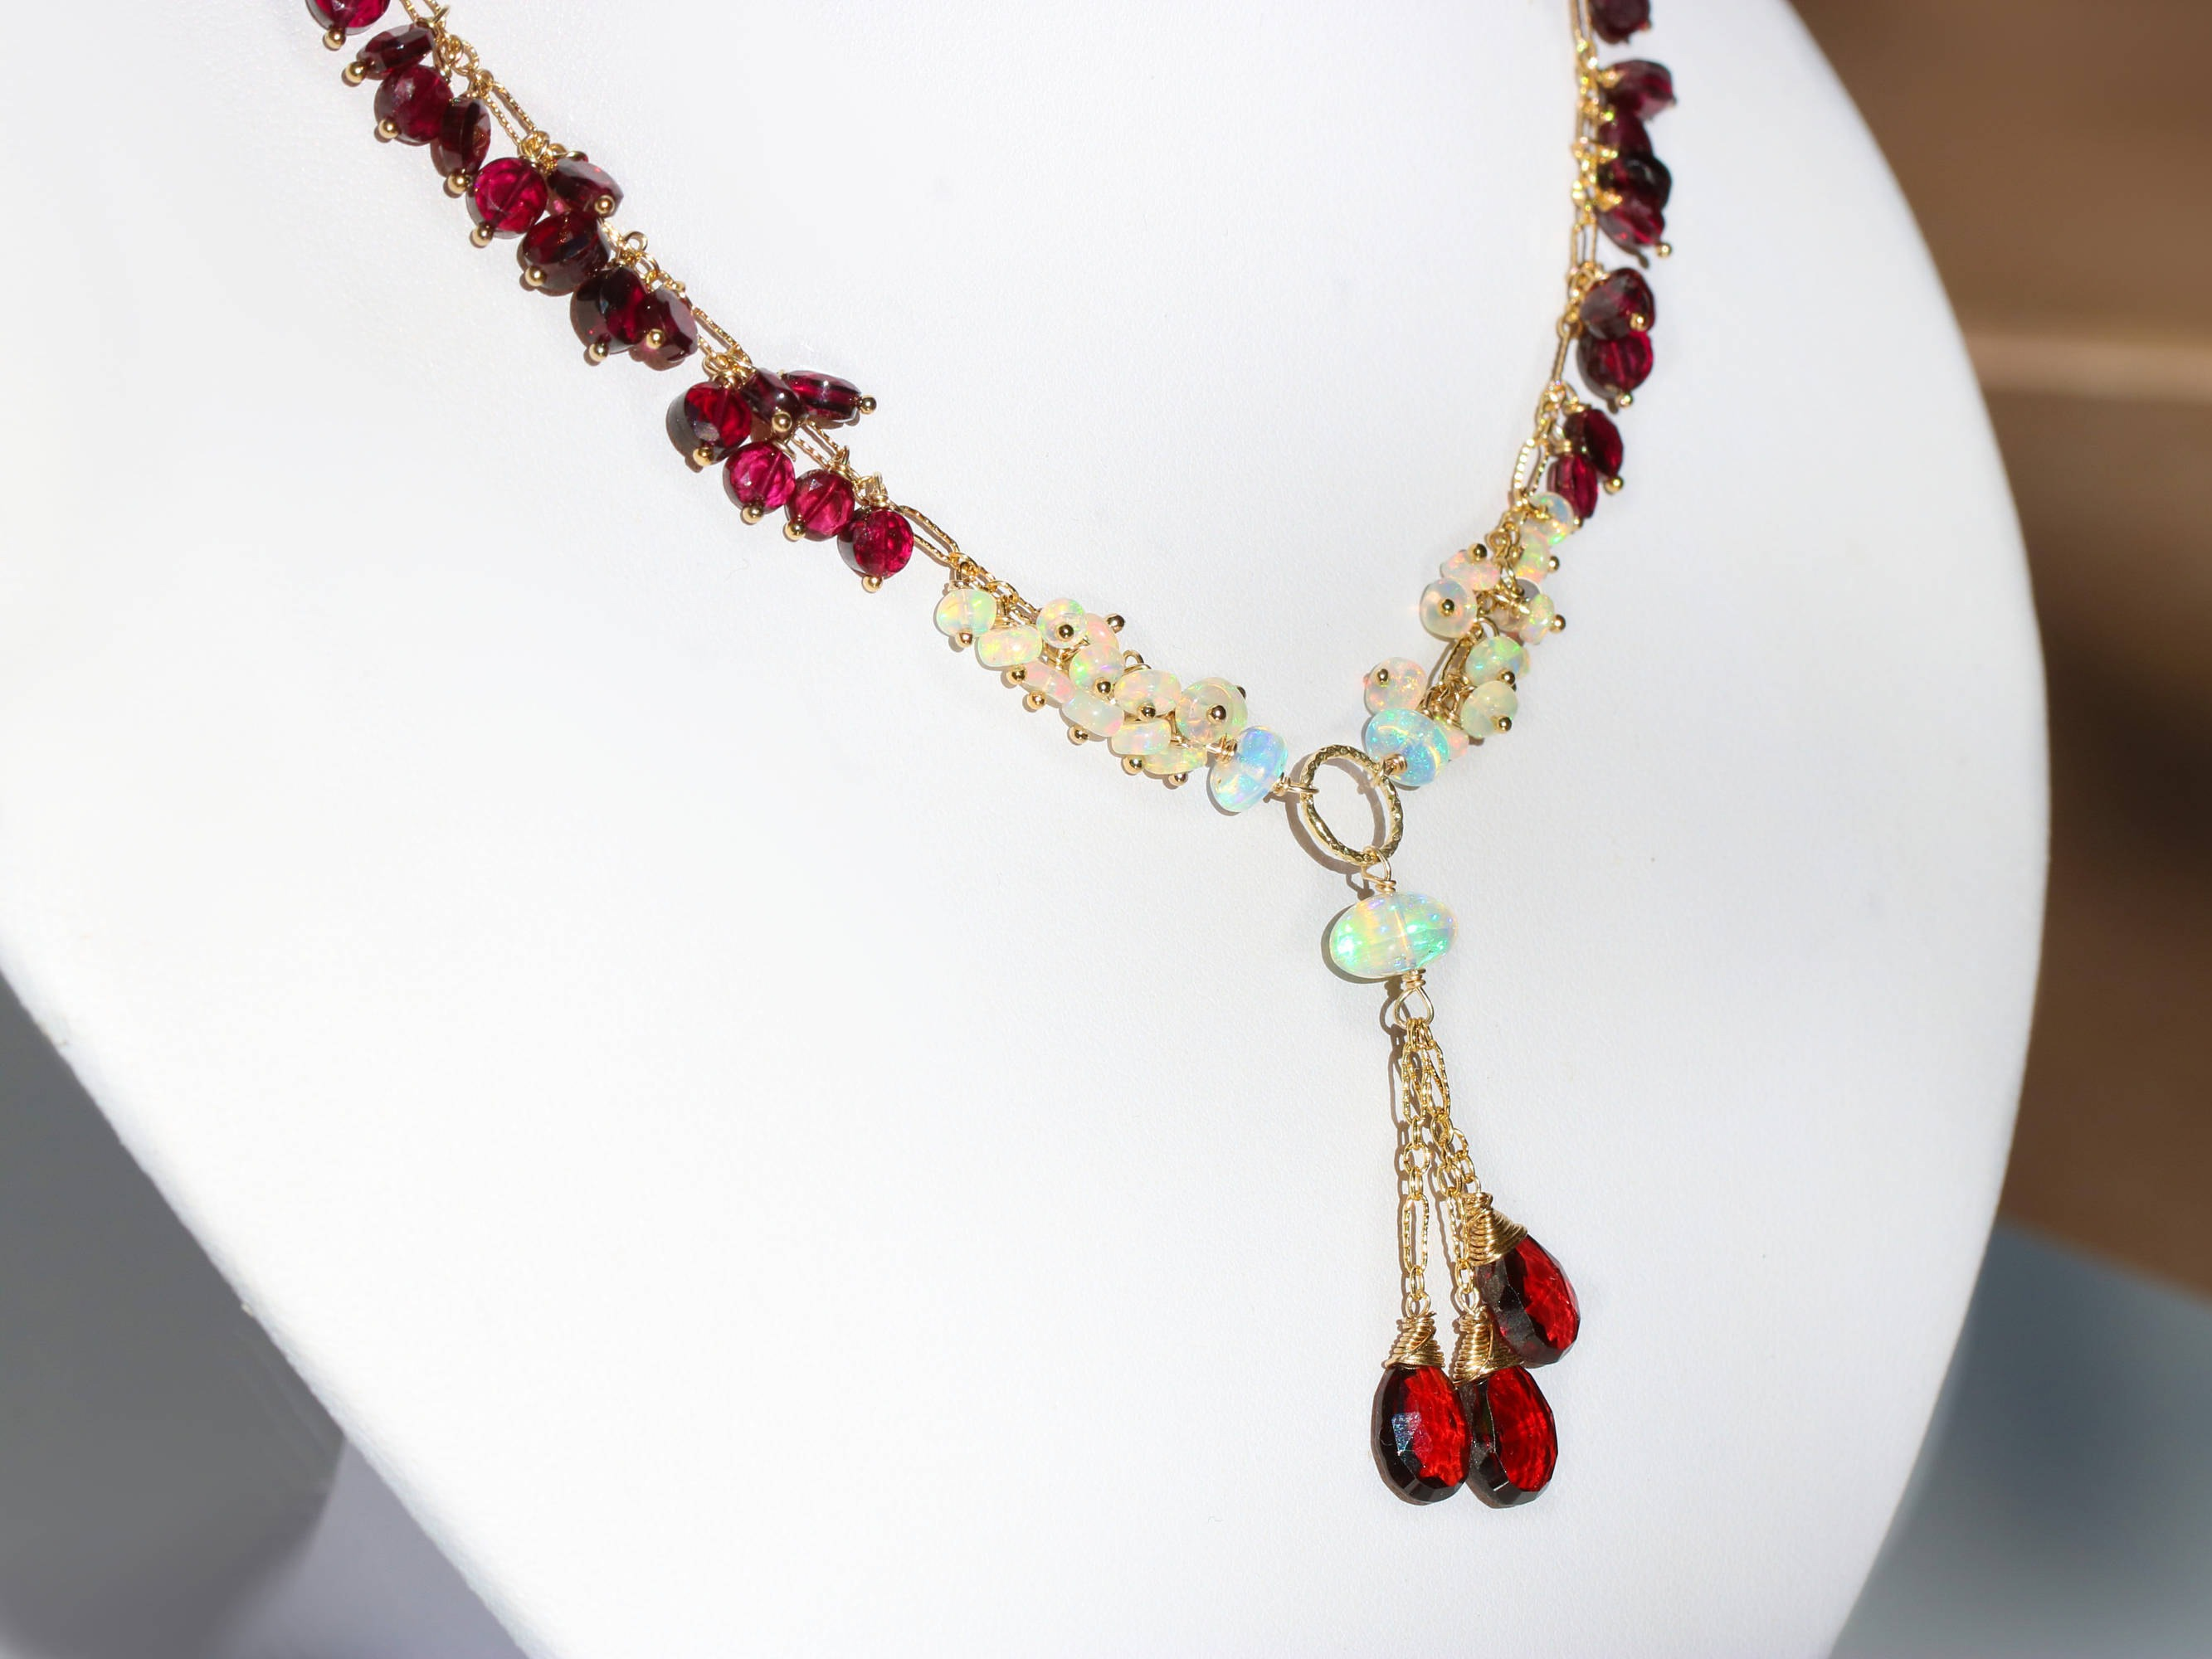 jewelry victorian an ams details necklace red antique lotfinder lot garnet traditional